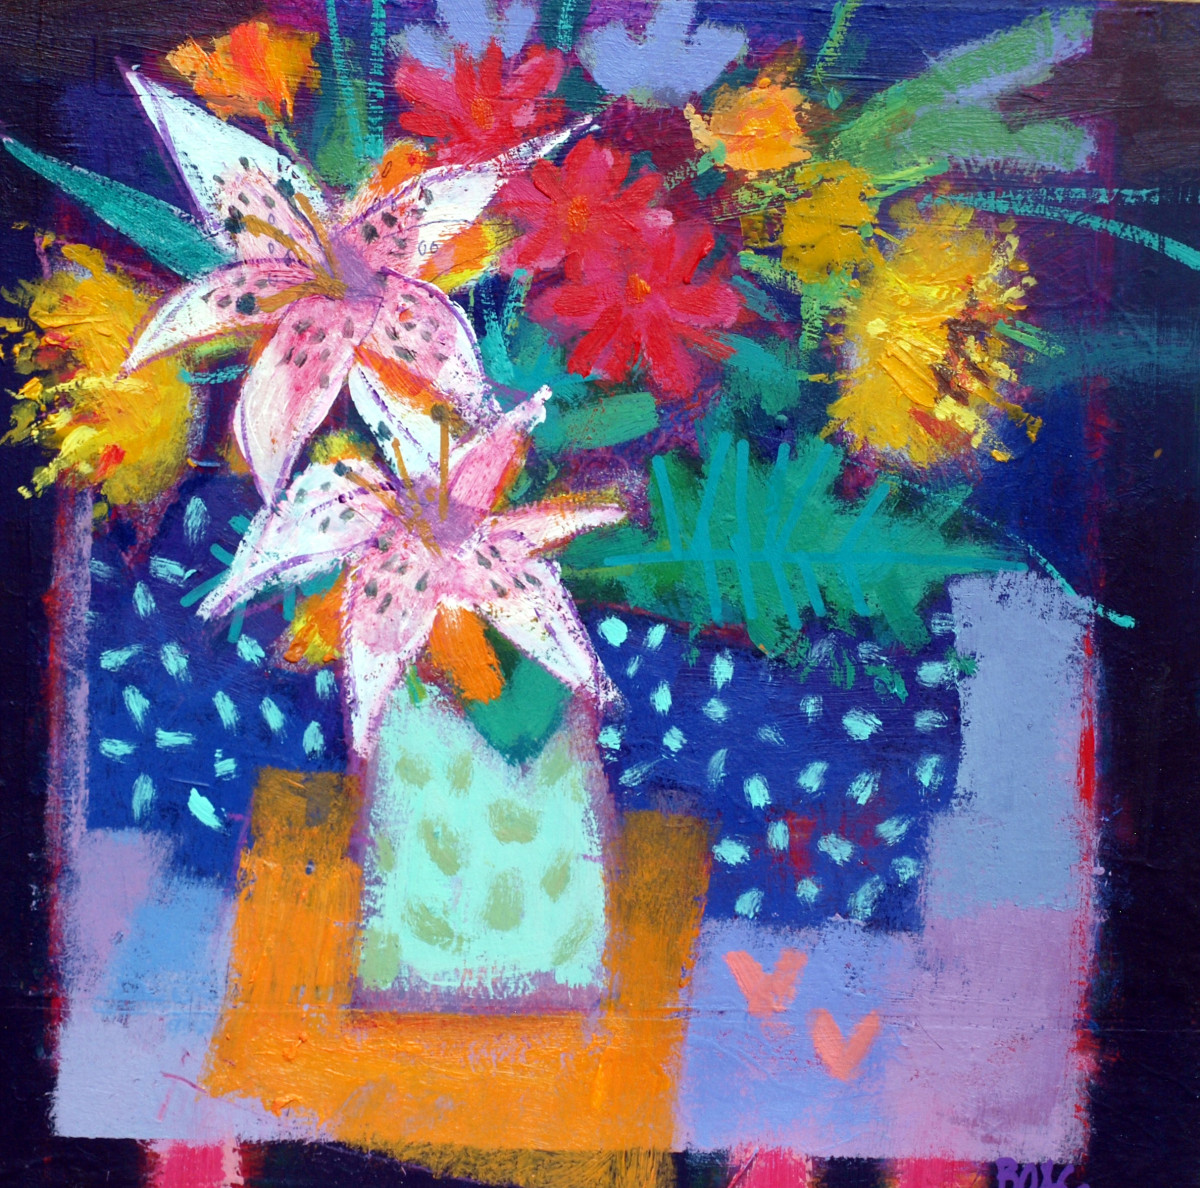 White lilies & love hearts by francis boag